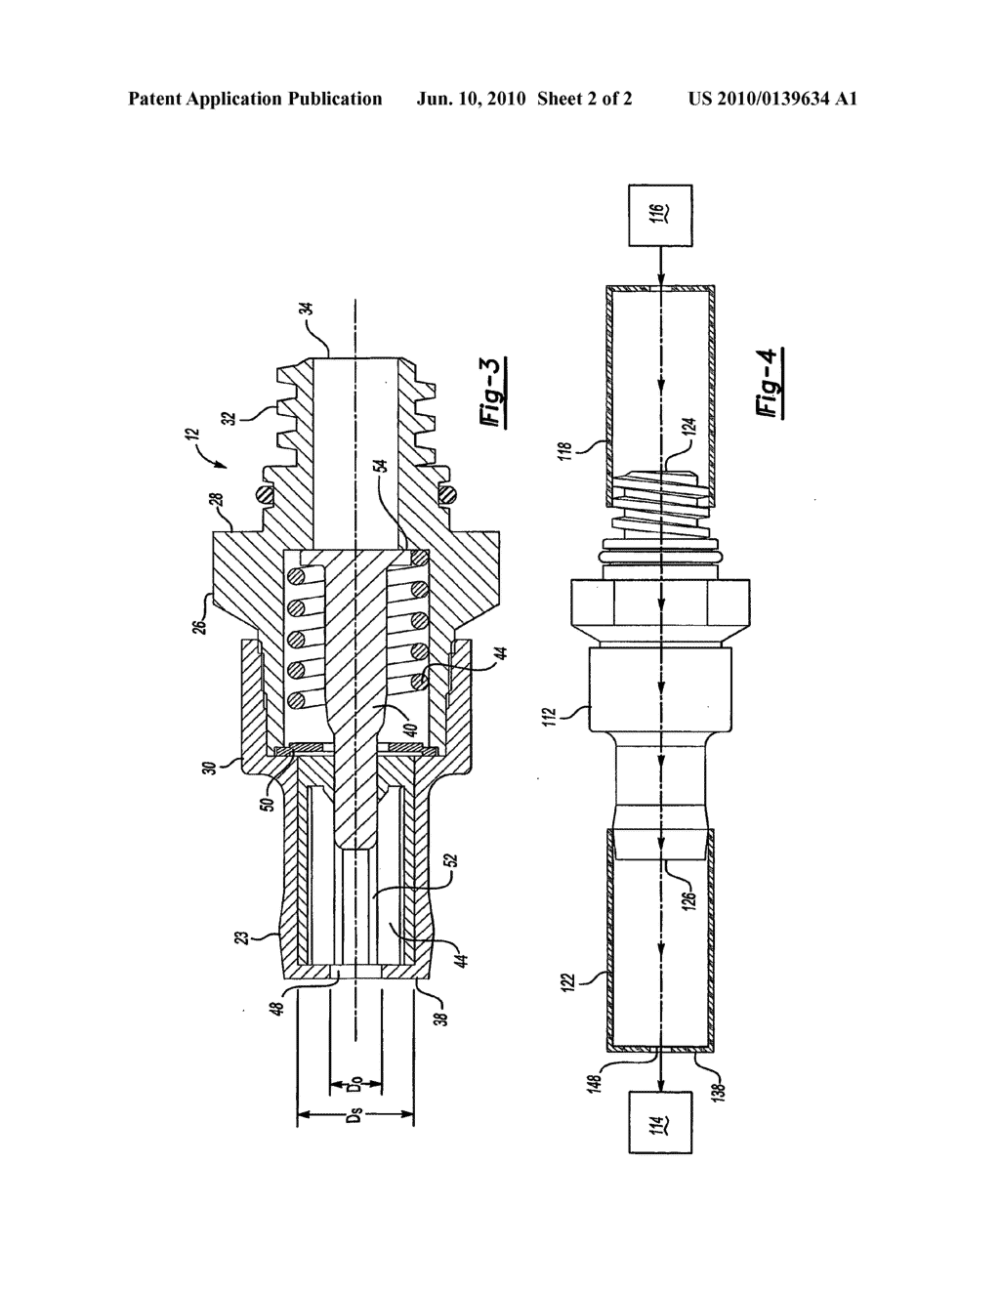 medium resolution of positive crankcase ventilation valve assembly with a vacuum pulsation dampener diagram schematic and image 03